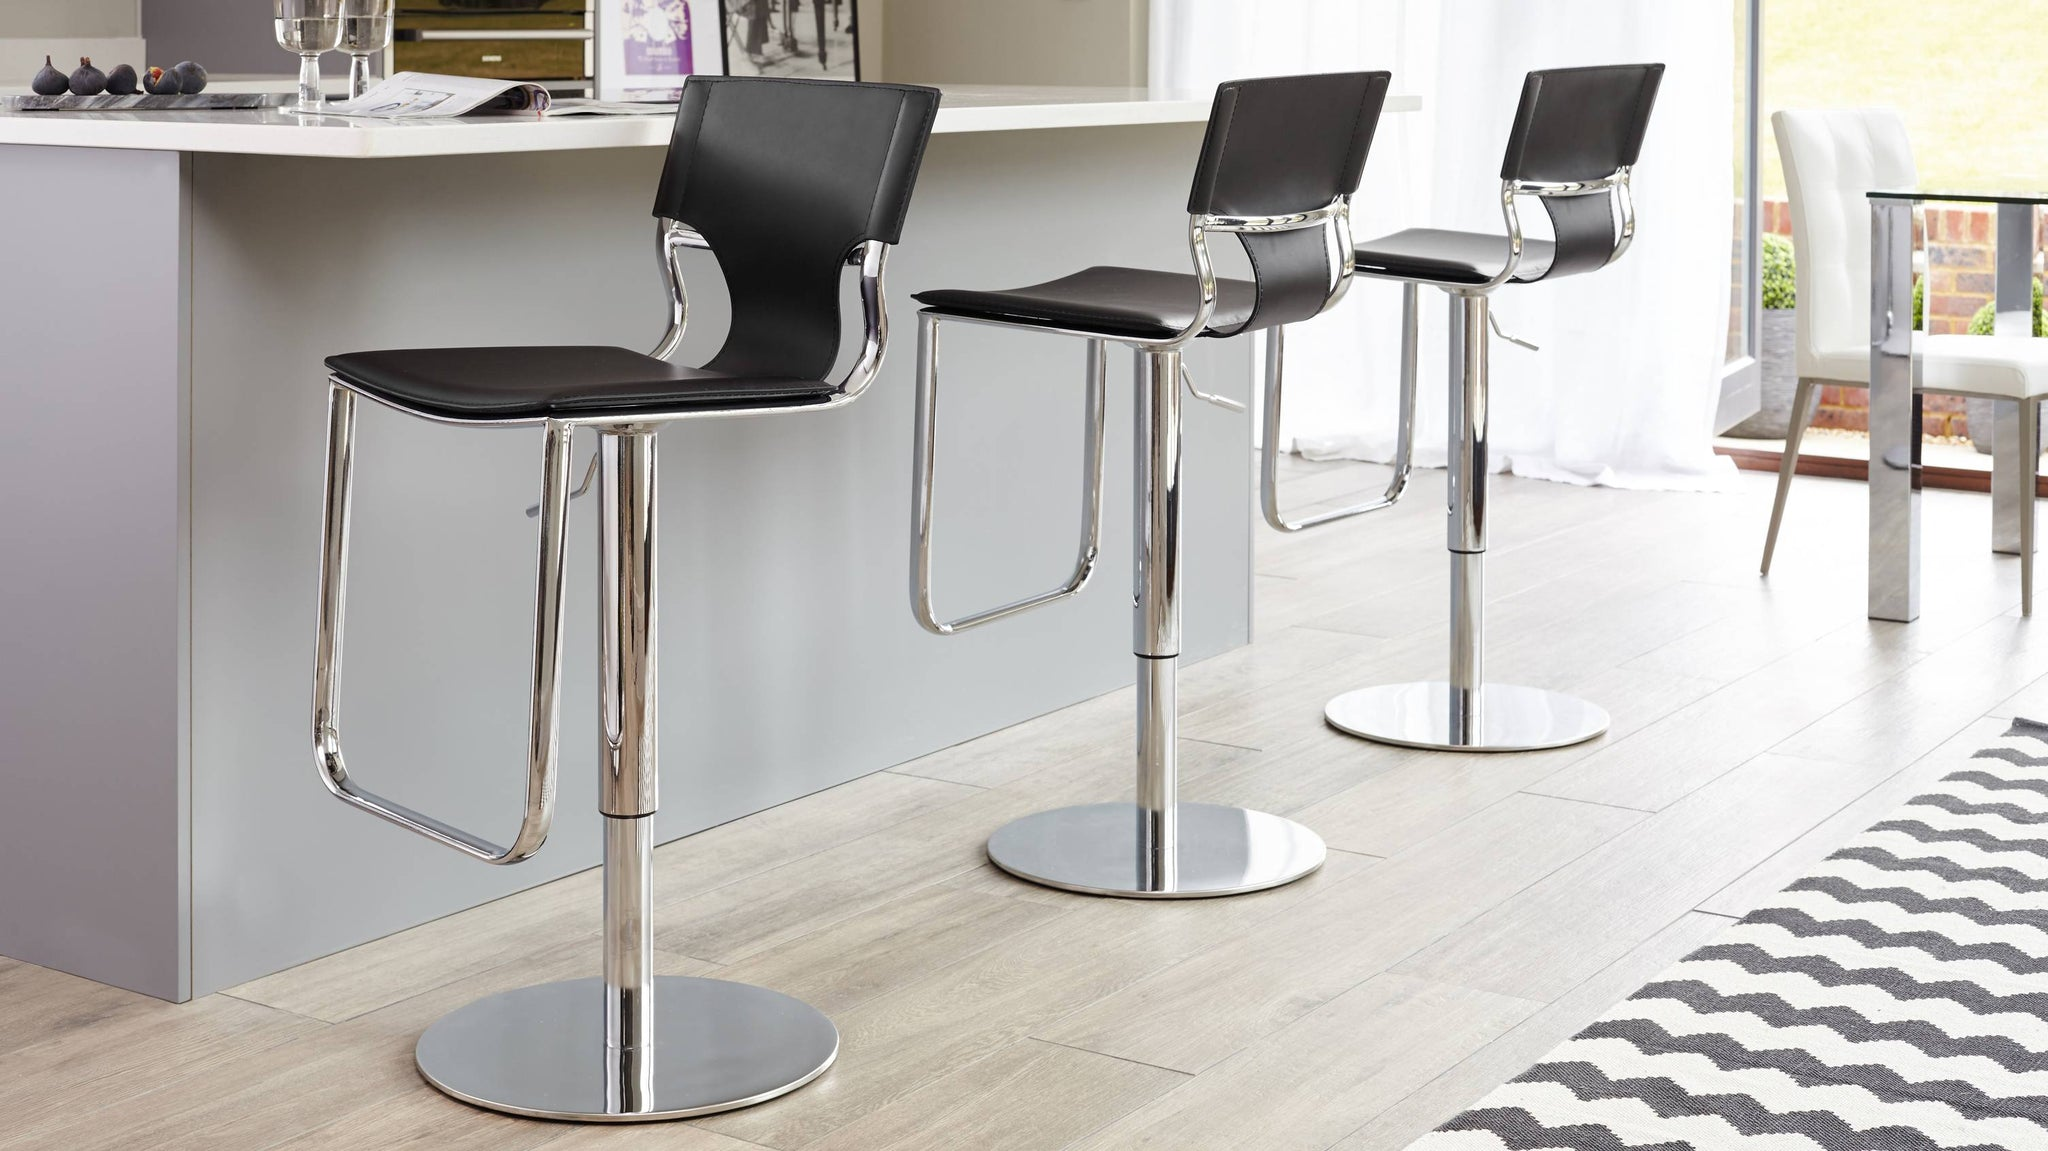 Comfortable Black Bar Stools with Back Rest